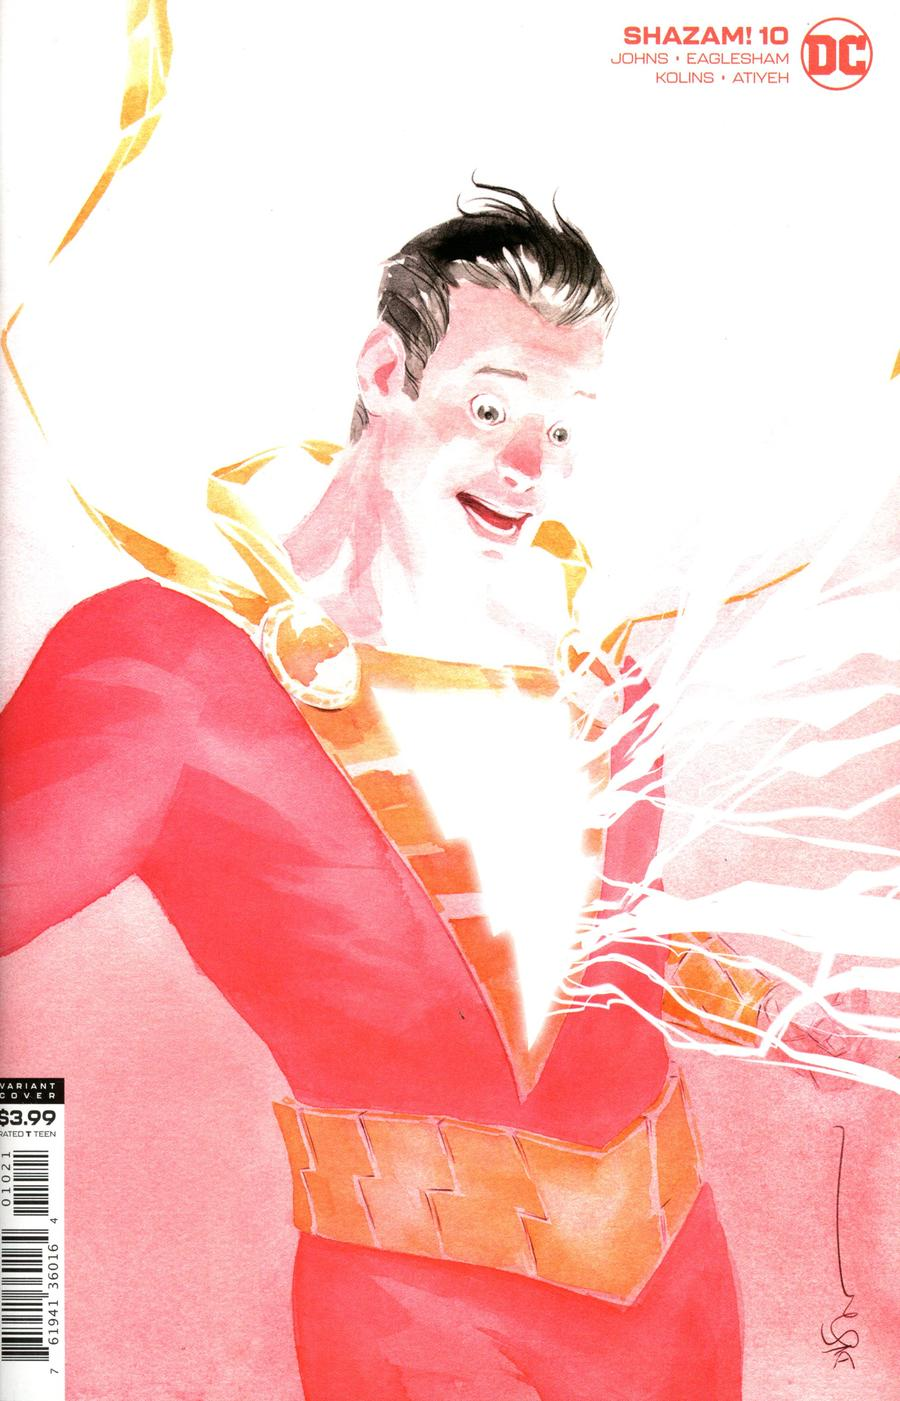 SHAZAM Vol 2 #10 Cover B Variant Dustin Nguyen Cover